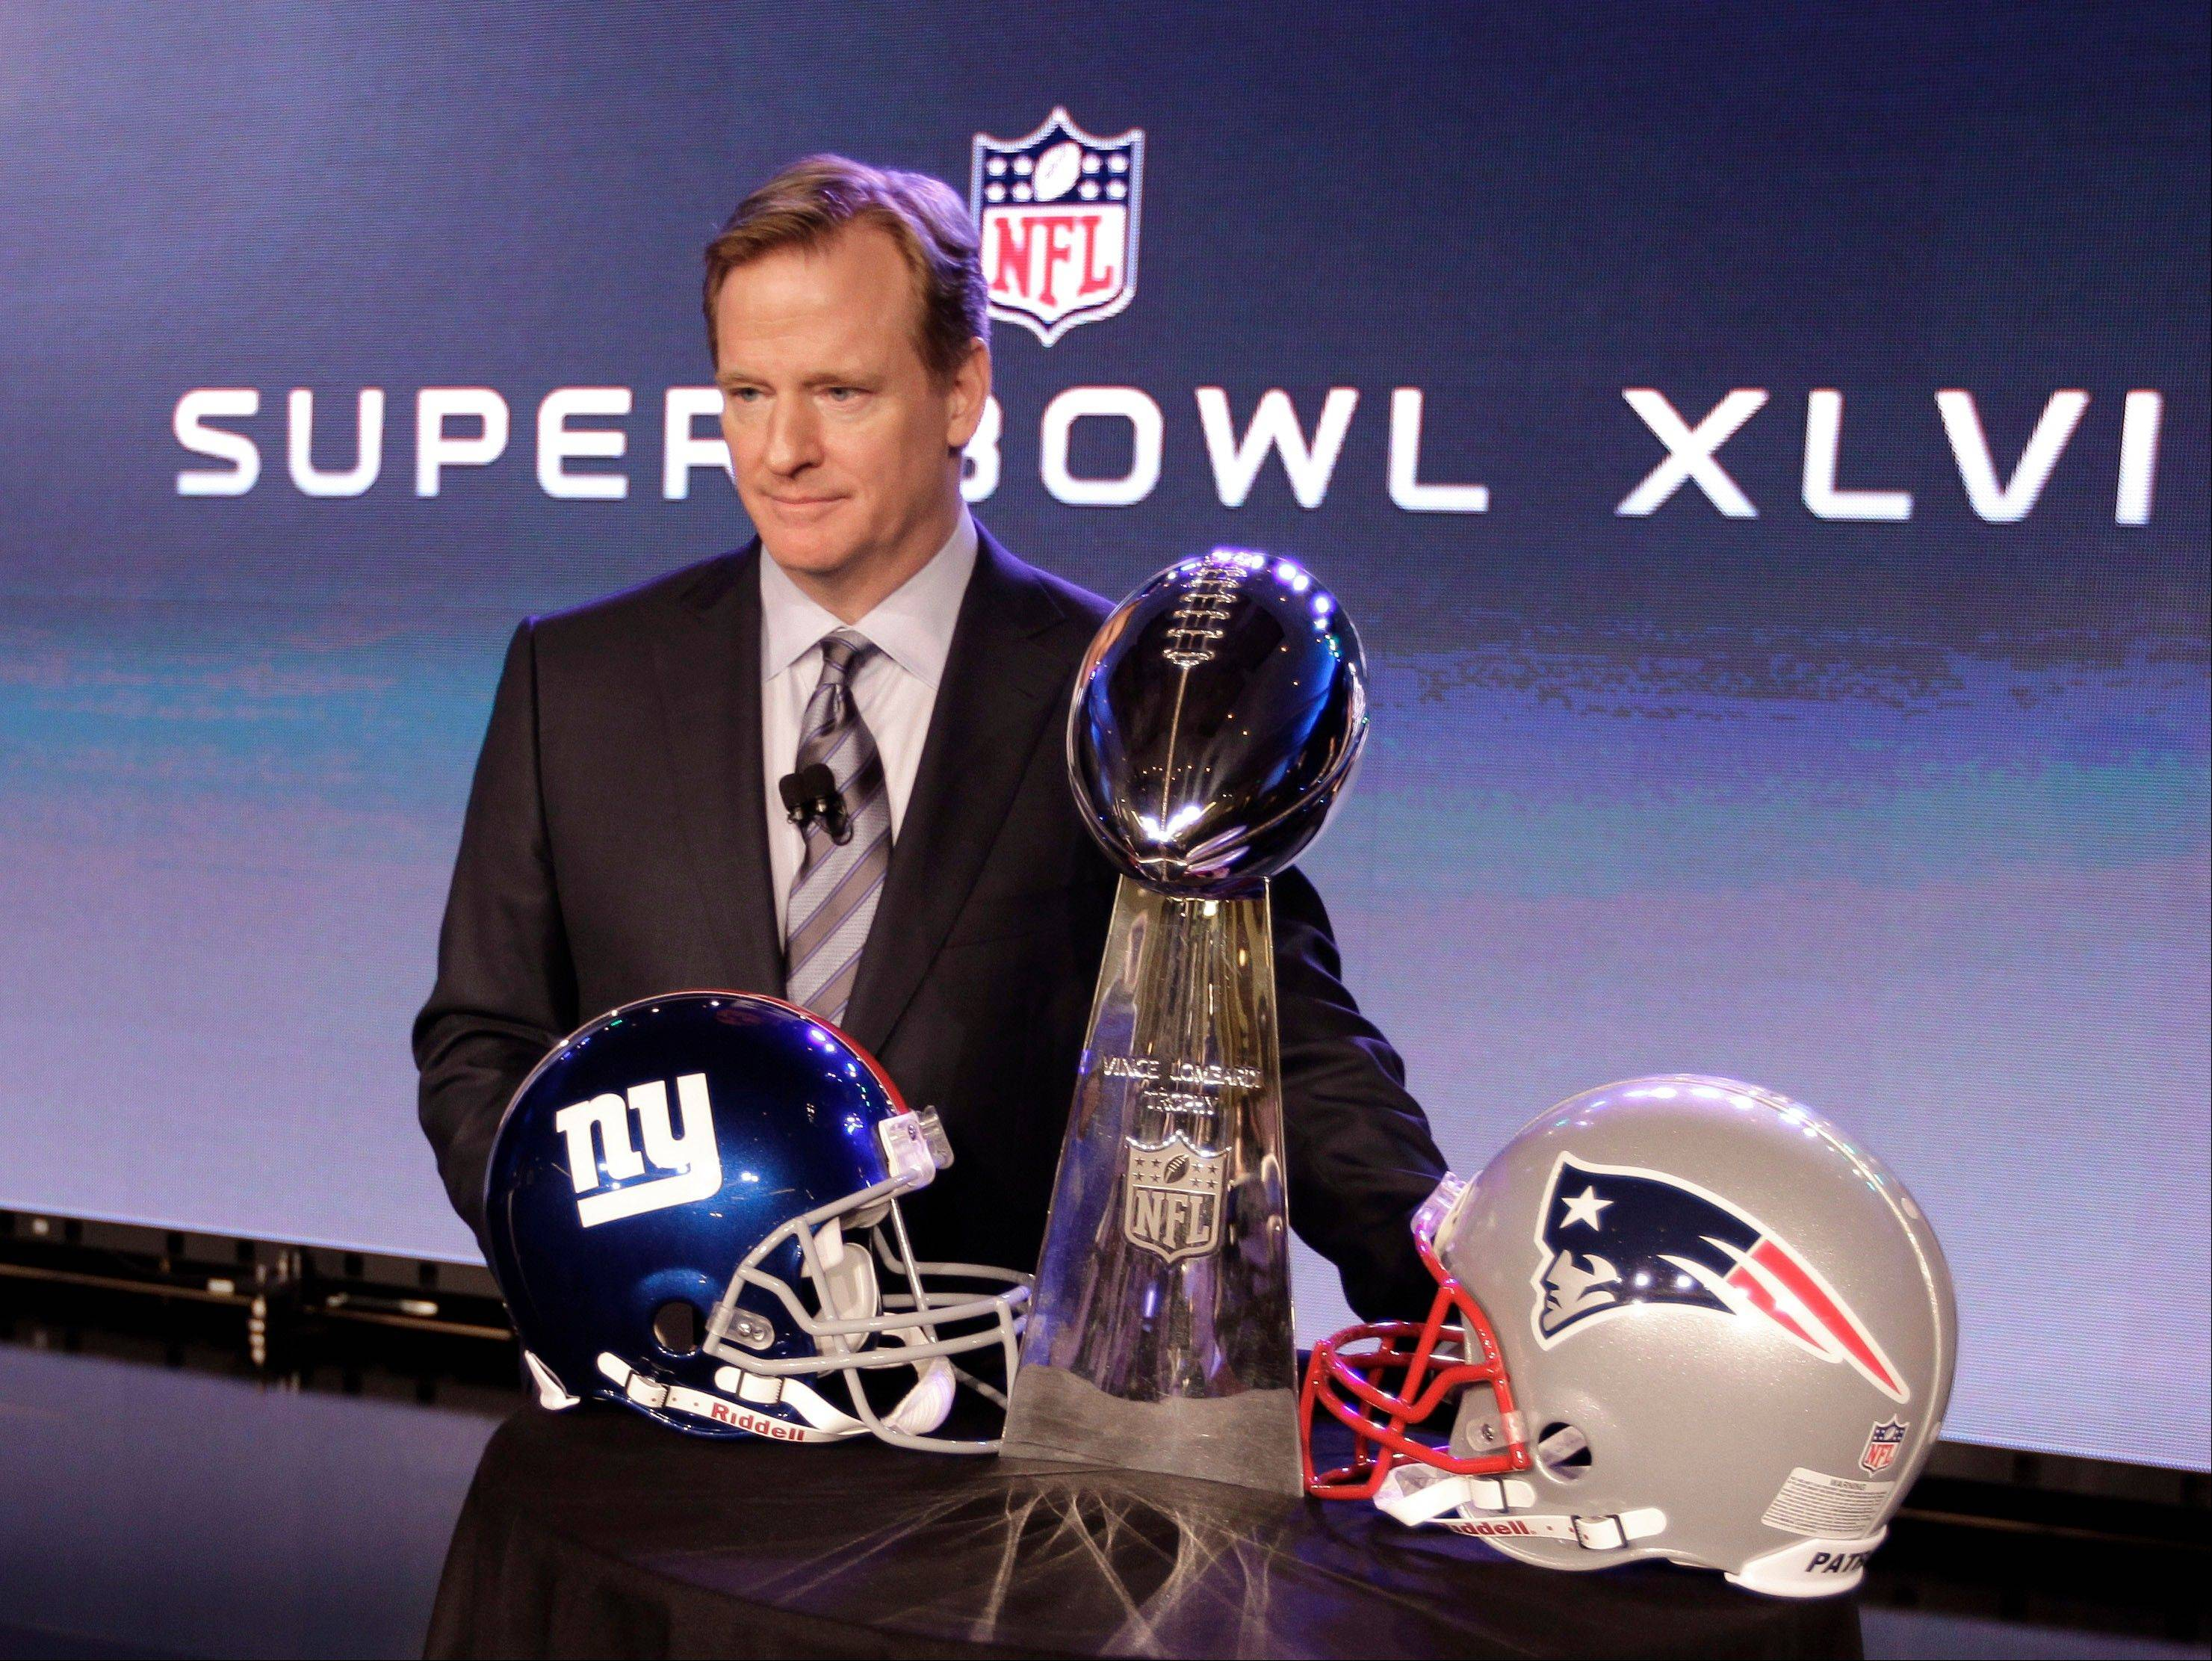 NFL Commissioner Roger Goodell poses with the Vince Lombardi Trophy after a news conference Friday, Feb. 3, 2012, in Indianapolis. The New England Patriots will face the New York Giants in Super Bowl XLVI on Feb. 5.